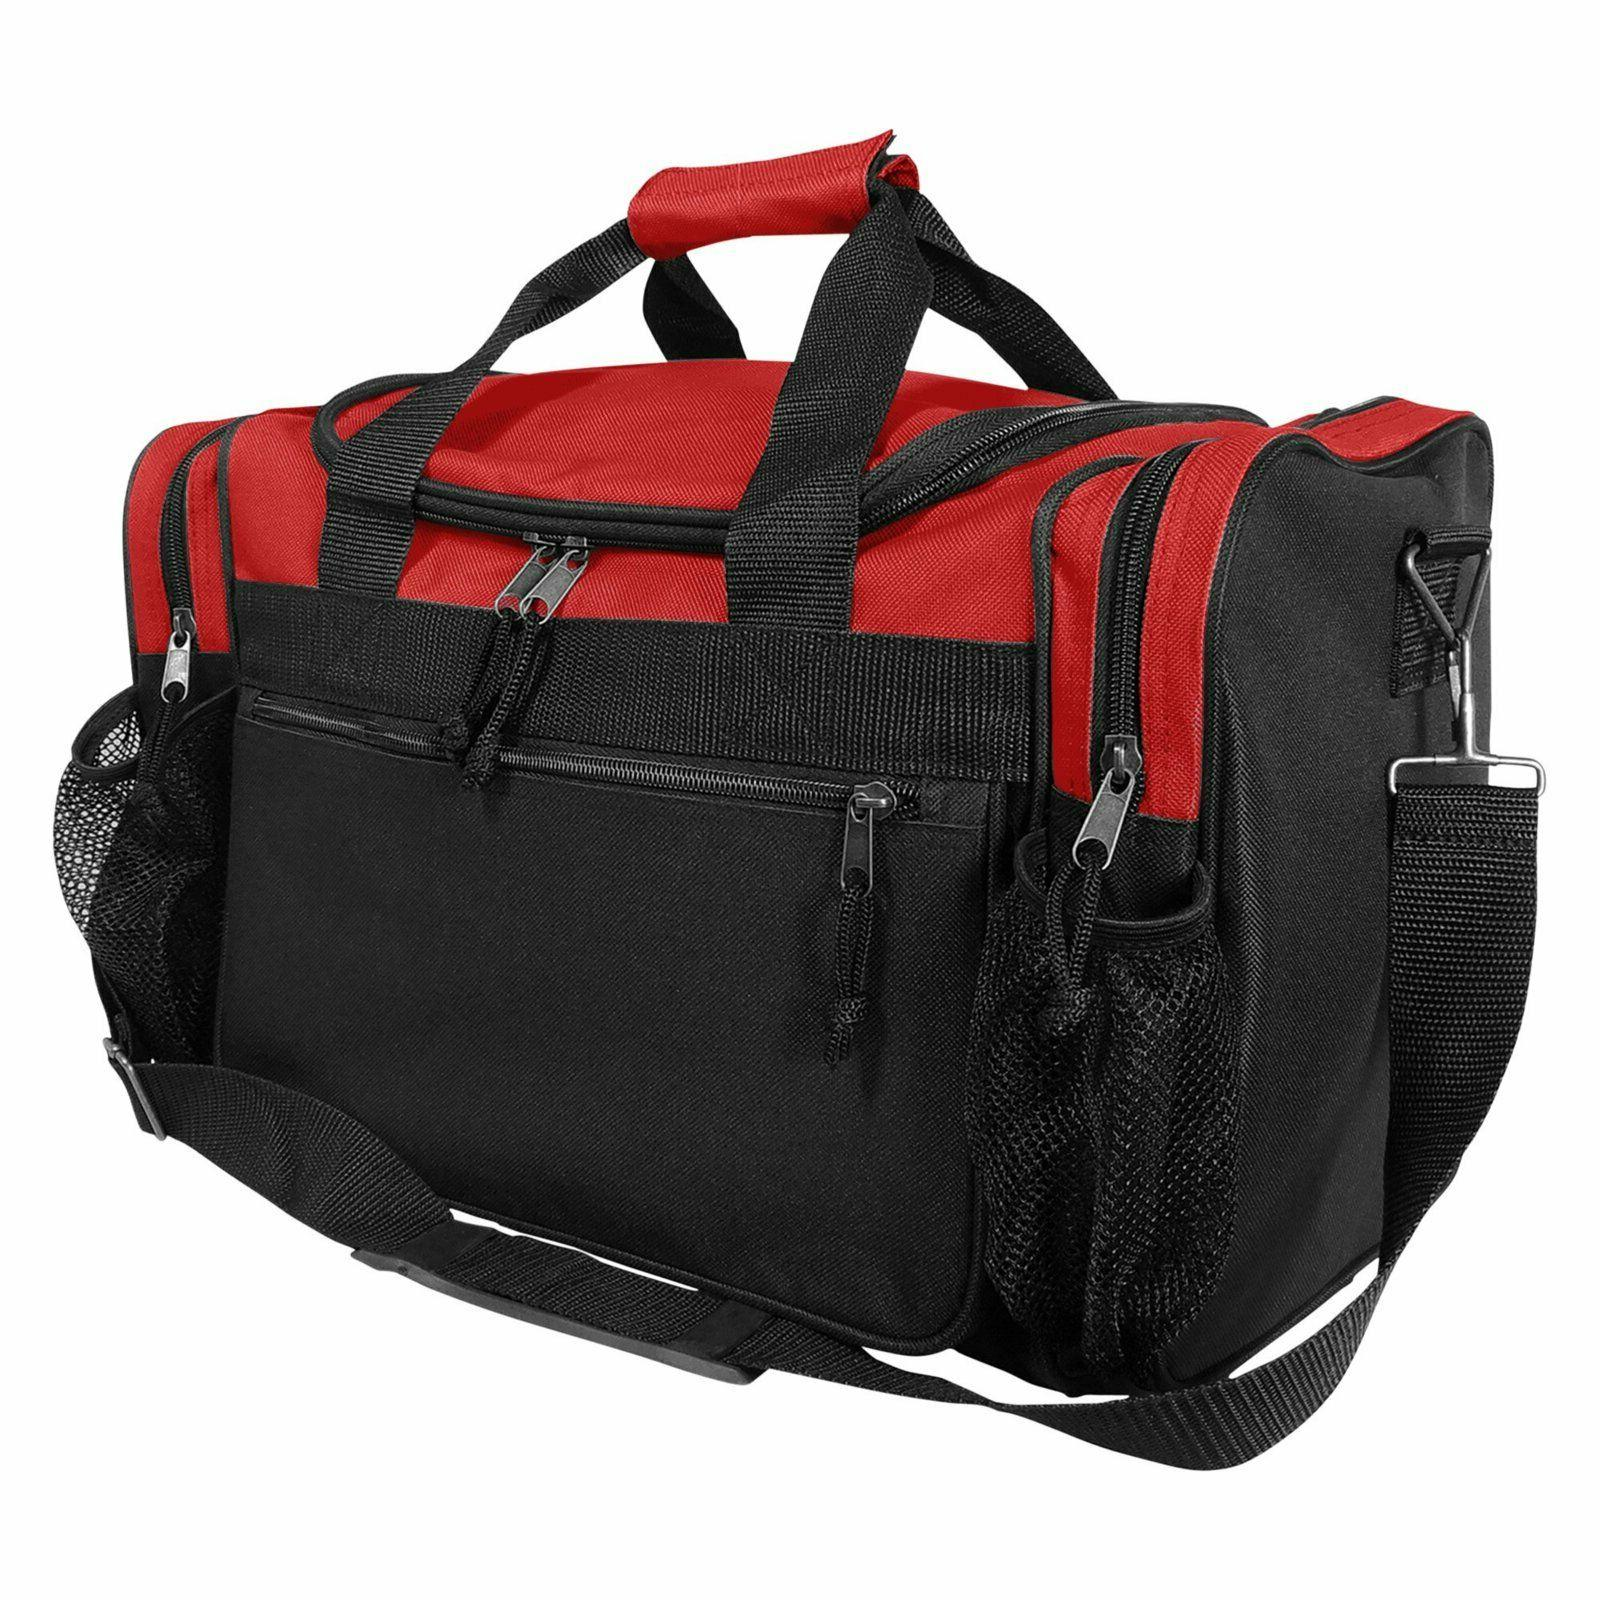 17 duffle travel bag with dual front